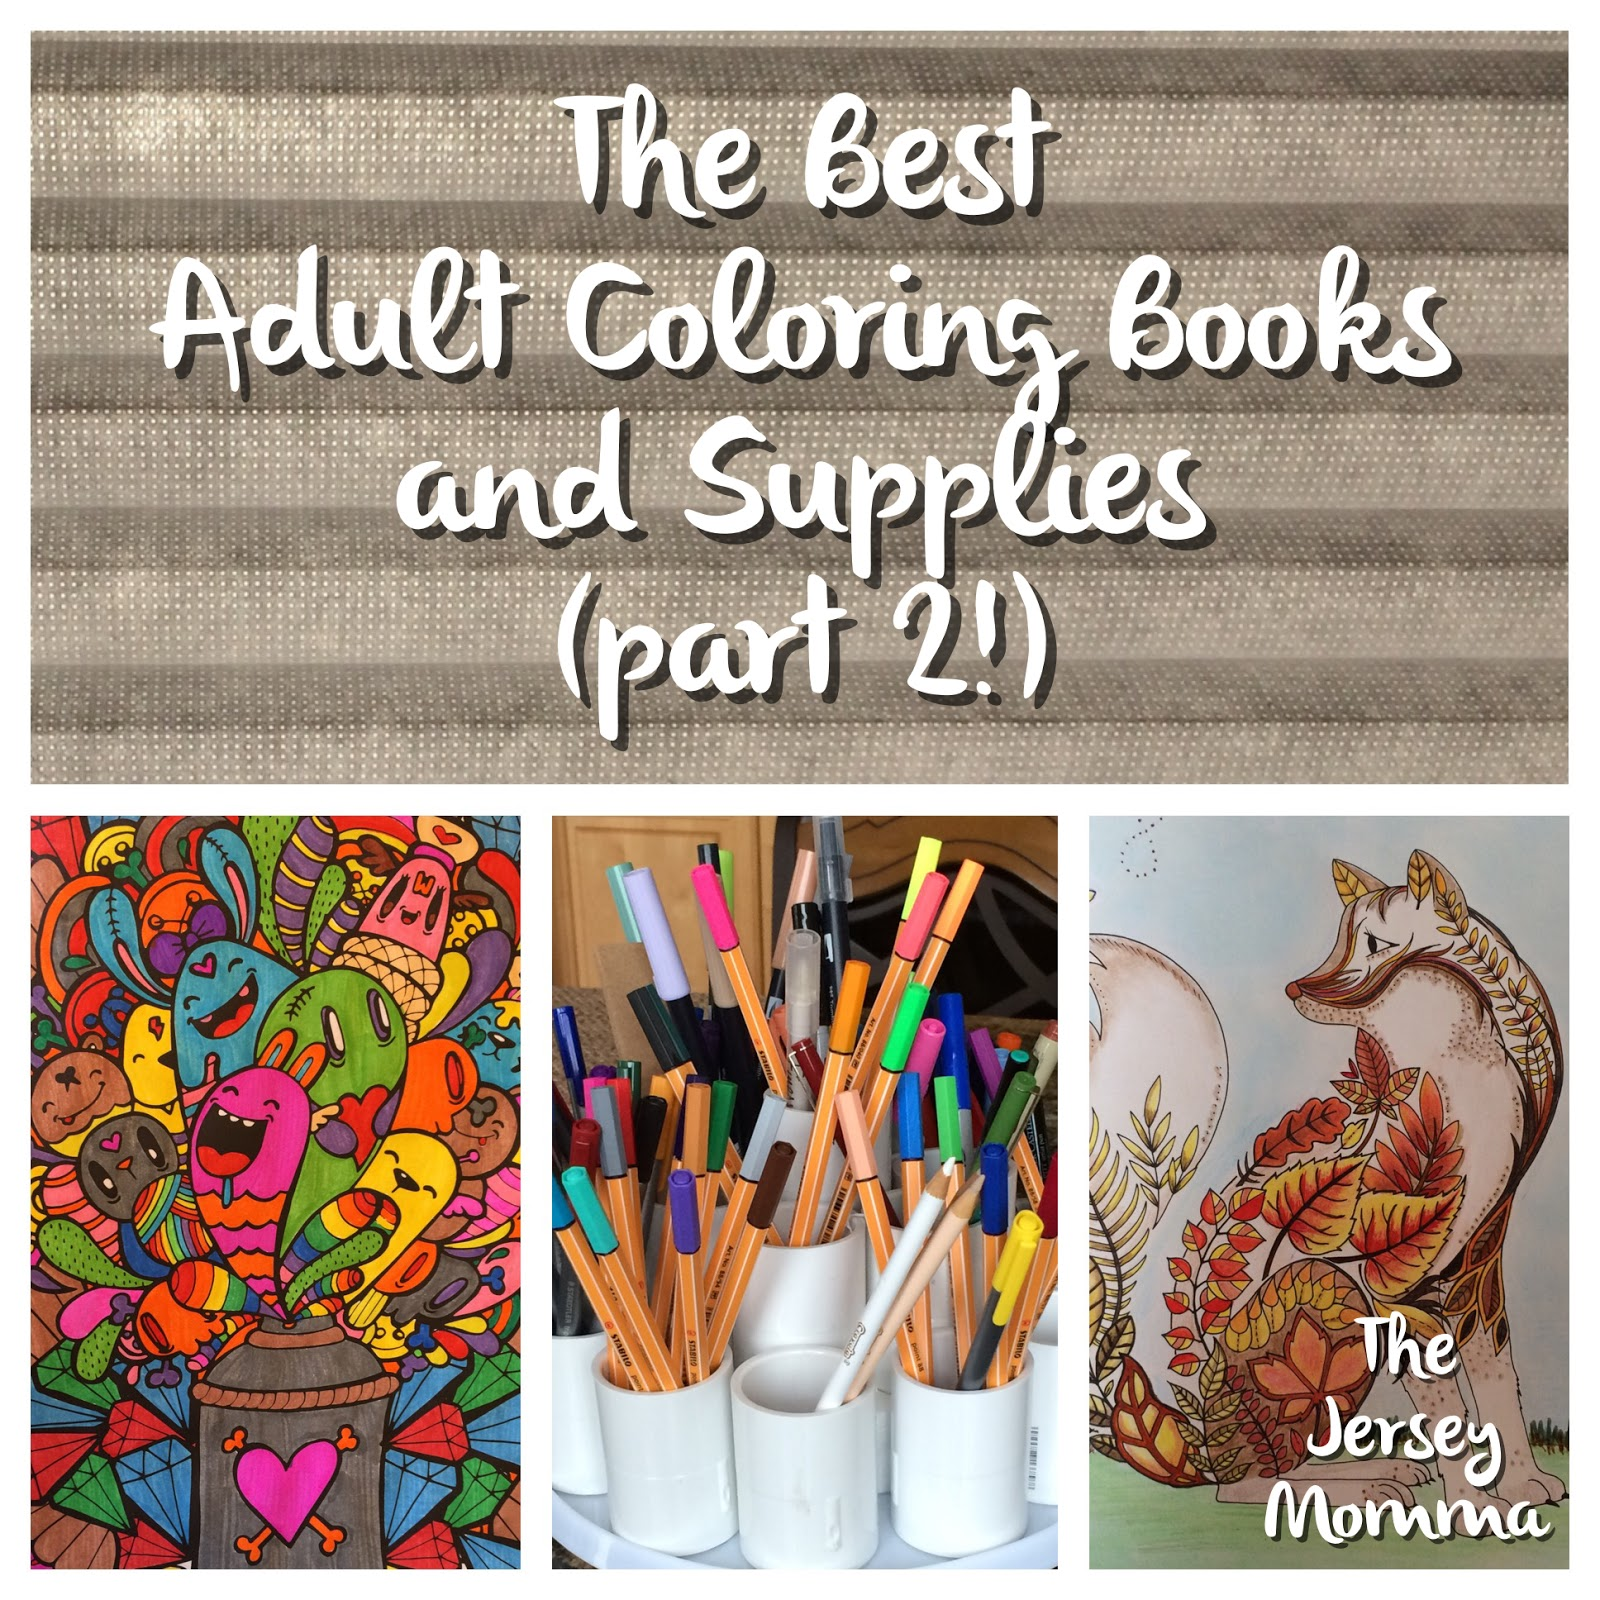 The Jersey Momma The Best Adult Coloring Books And Supplies